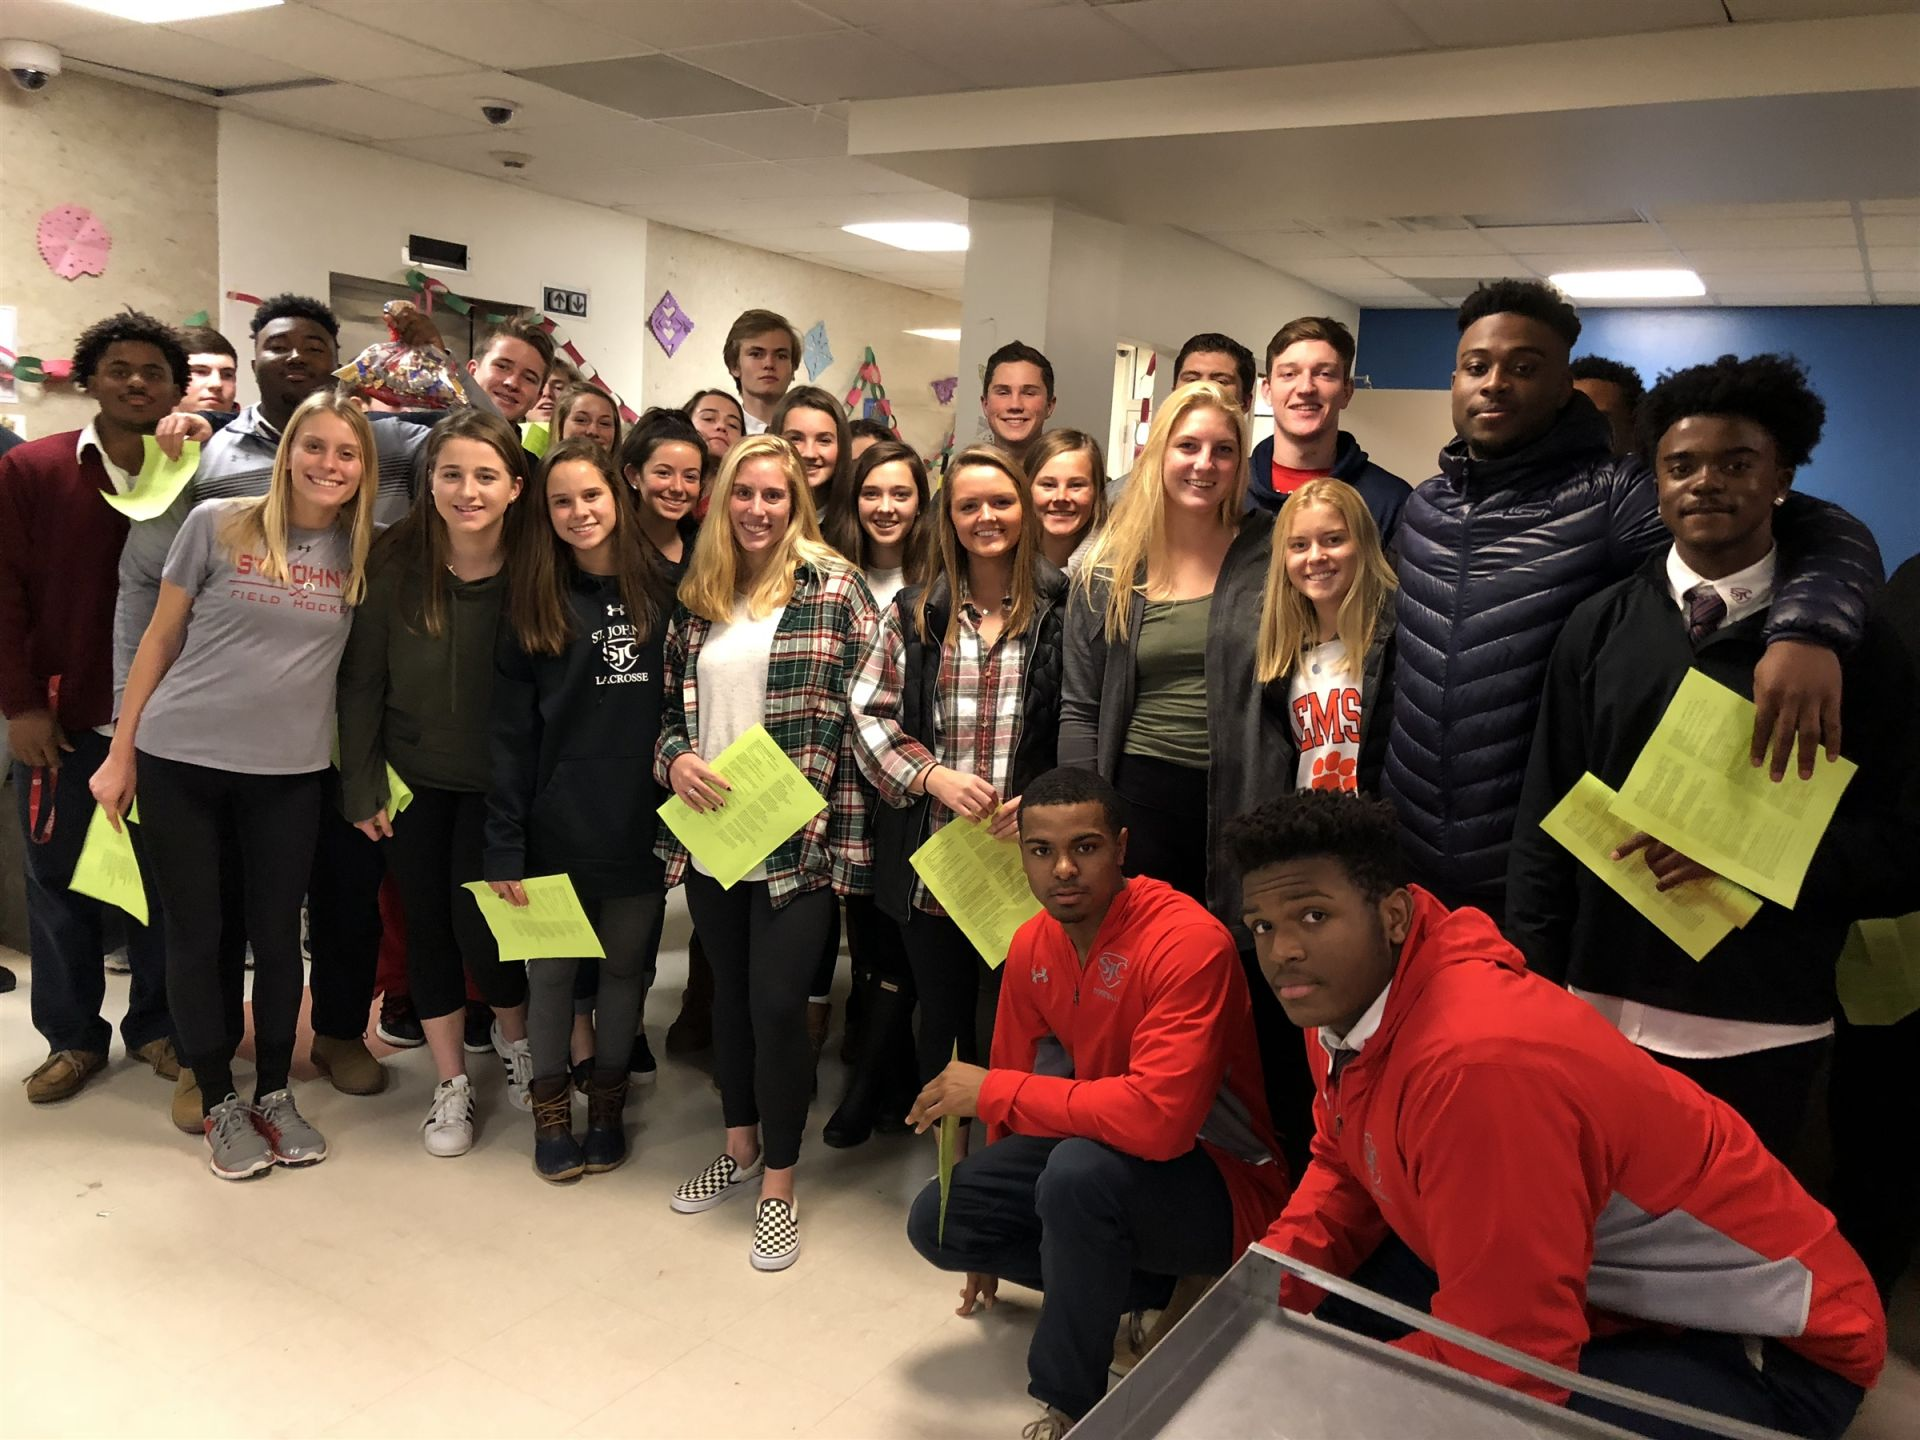 Girls Field Hockey, Girls Lacrosse, and Football caroling at the Catholic Charities Women's Shelter